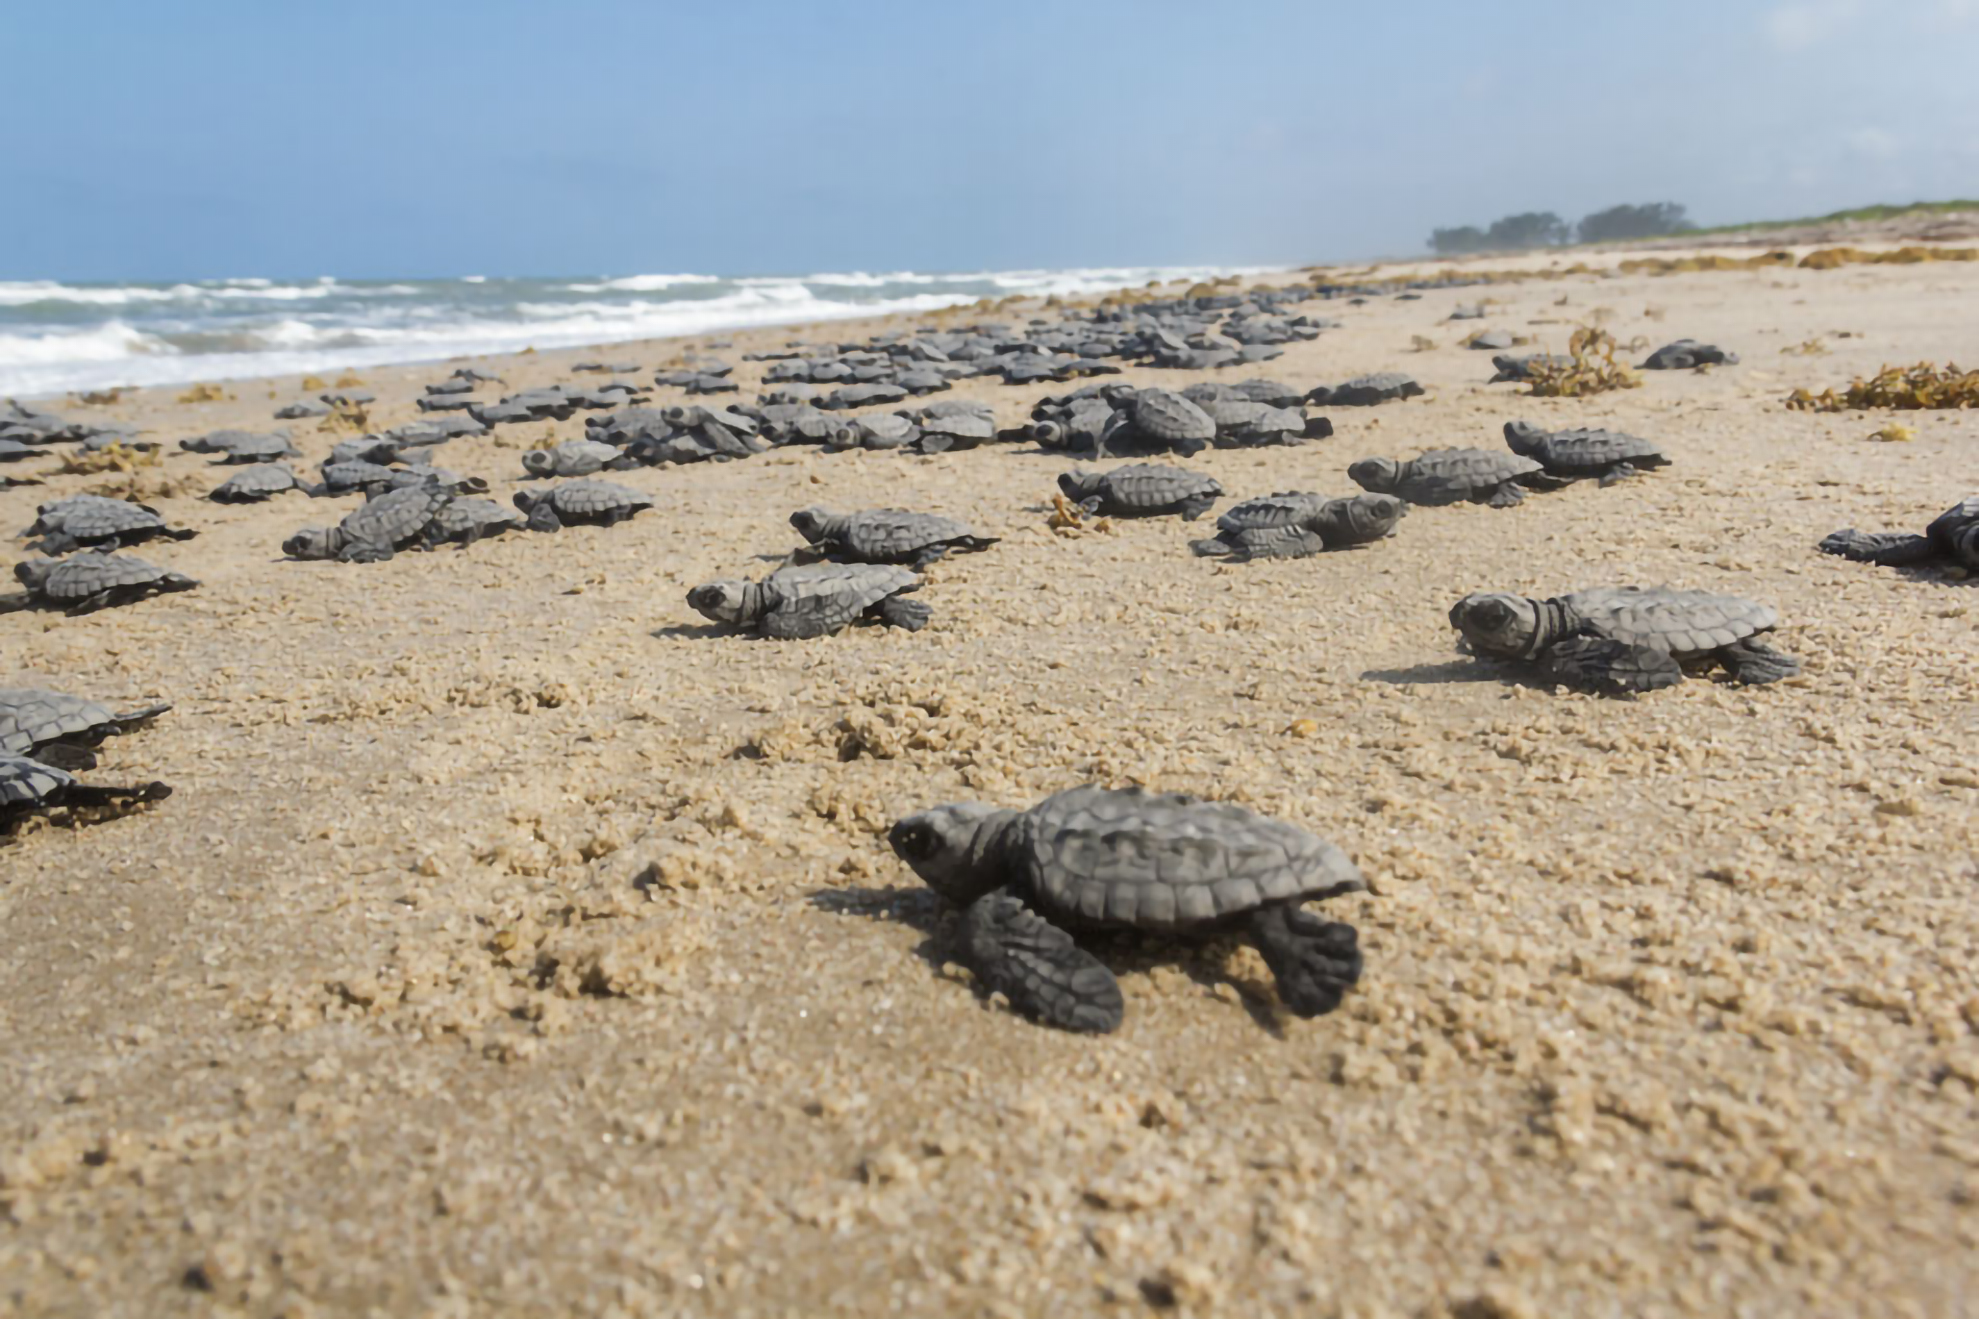 Dozens of juvenile sea turtles on a beach, heading to the Gulf of Mexico. Deepwater Horizon Sea Turtle Early Restoration Project.